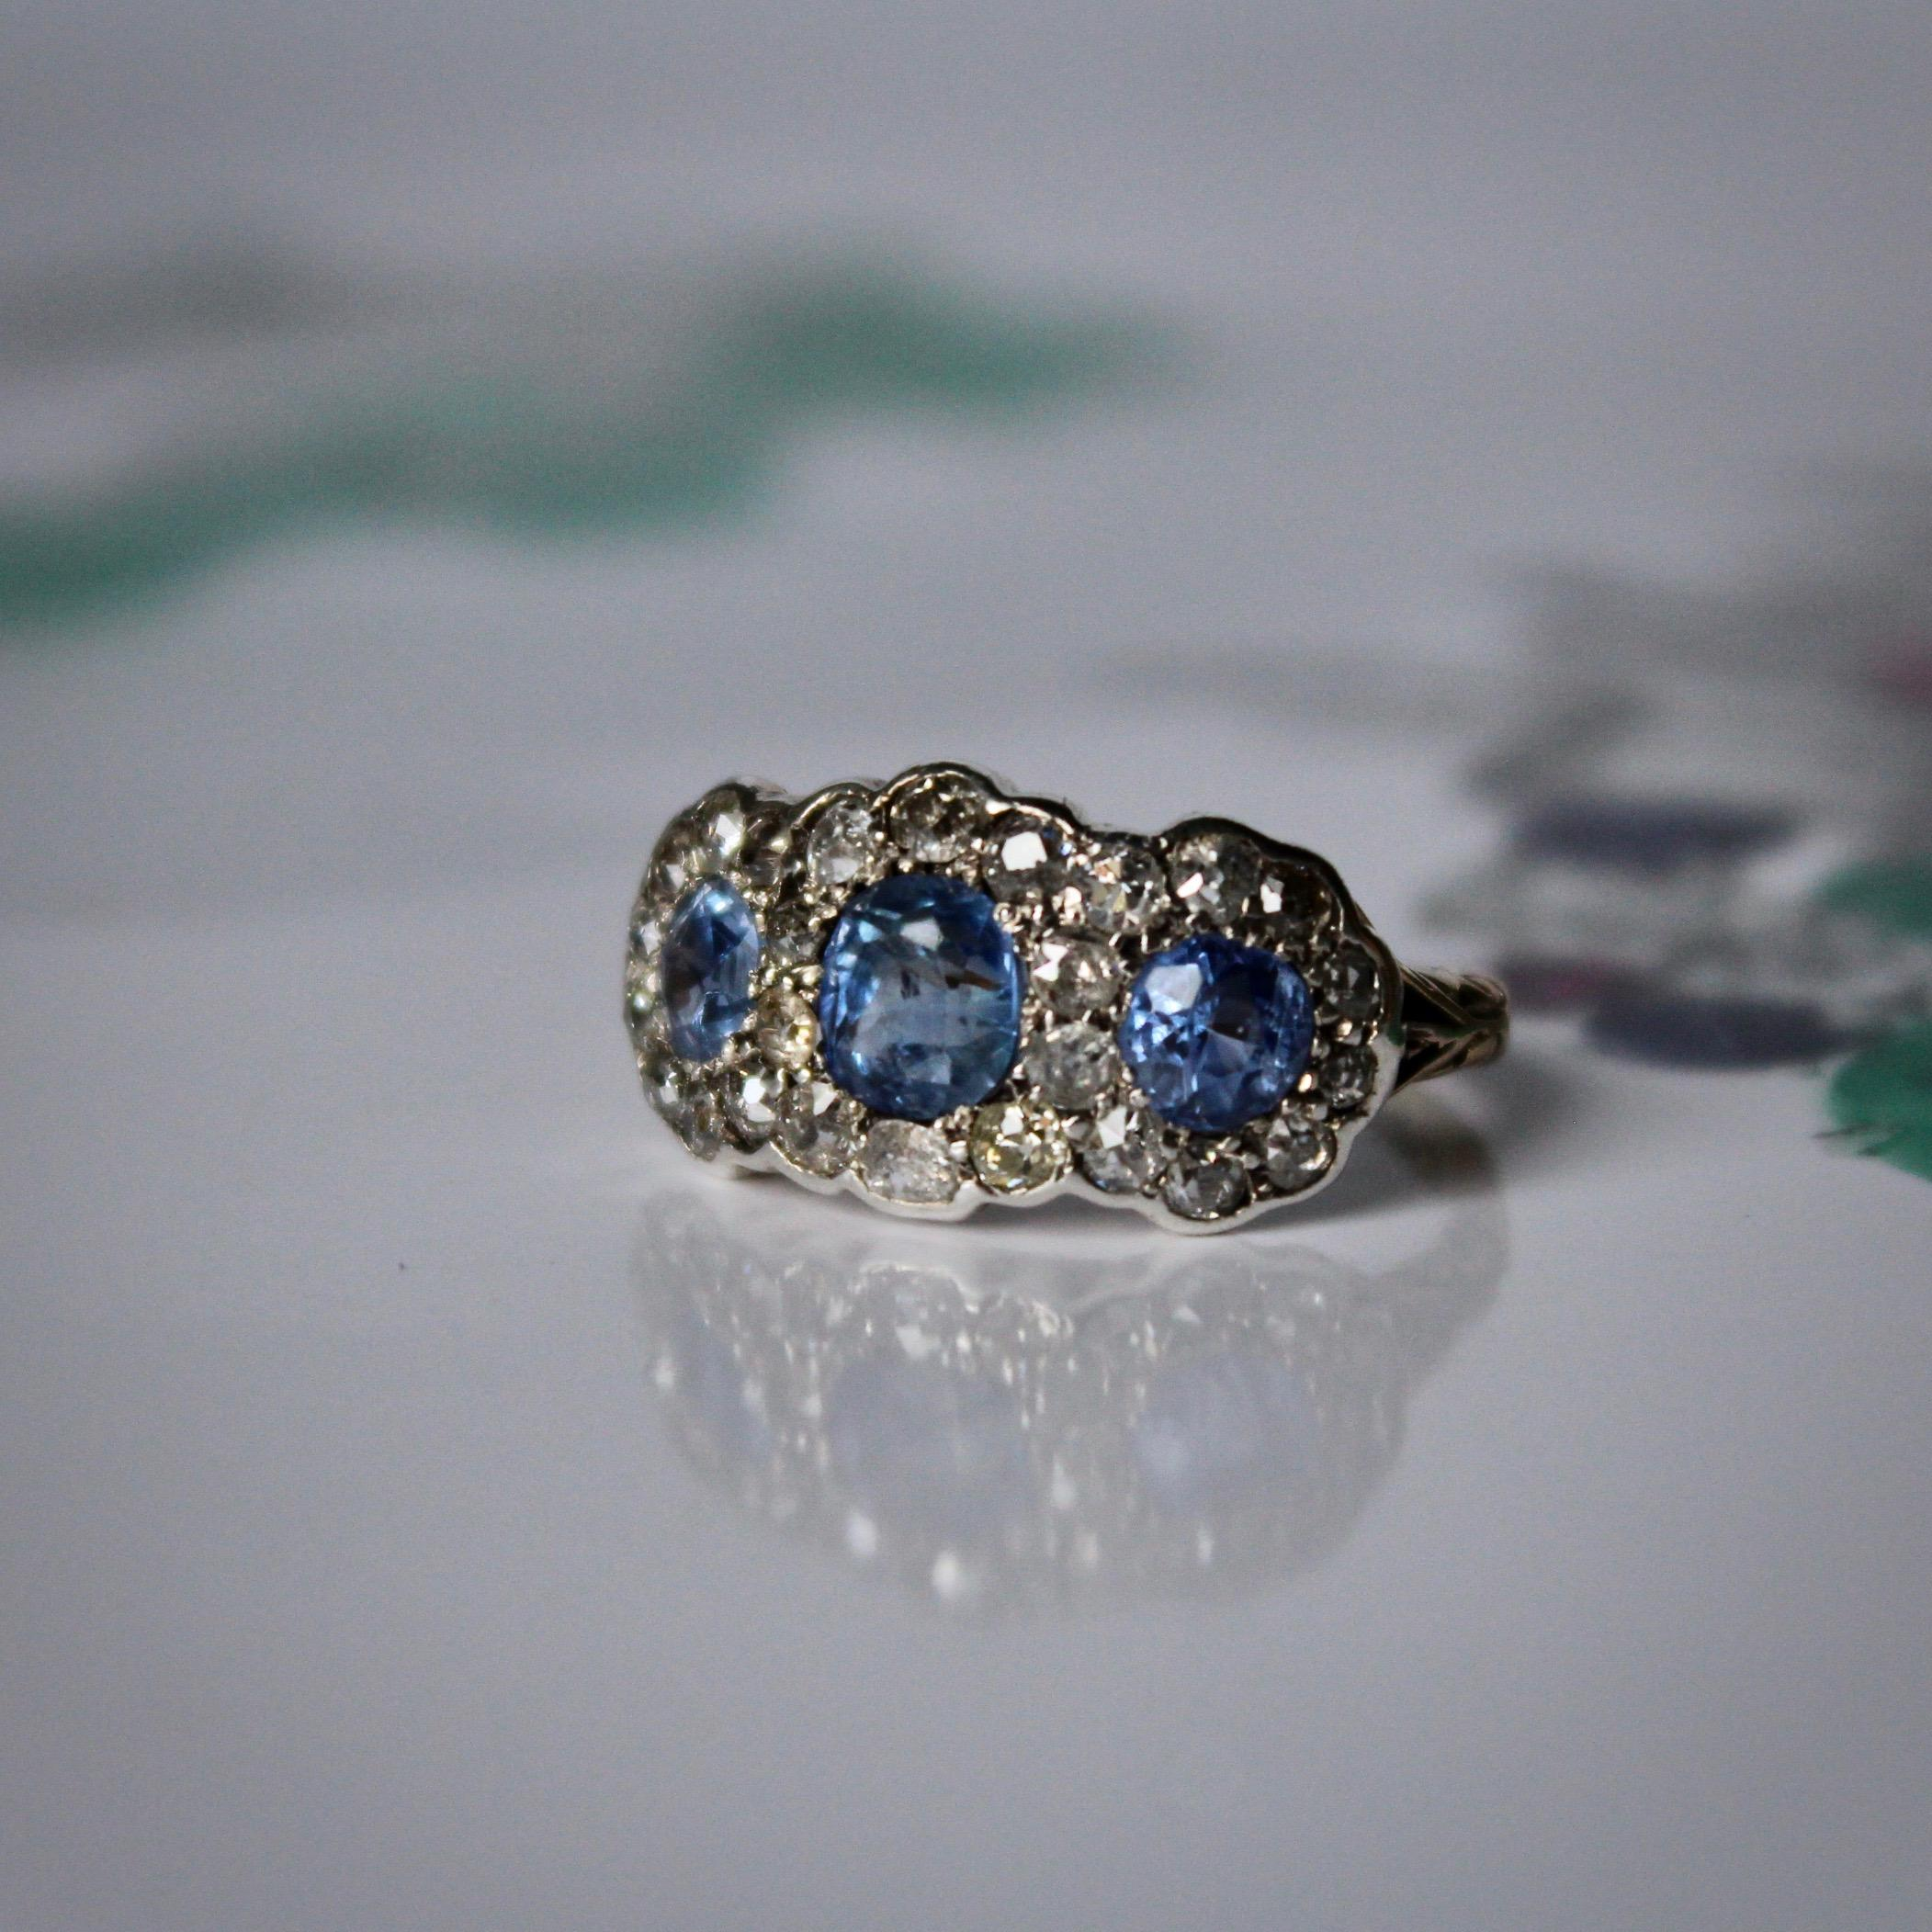 for rings gold blue j rare jewelry at master pale sale id sapphire cluster kashmir ring img diamond